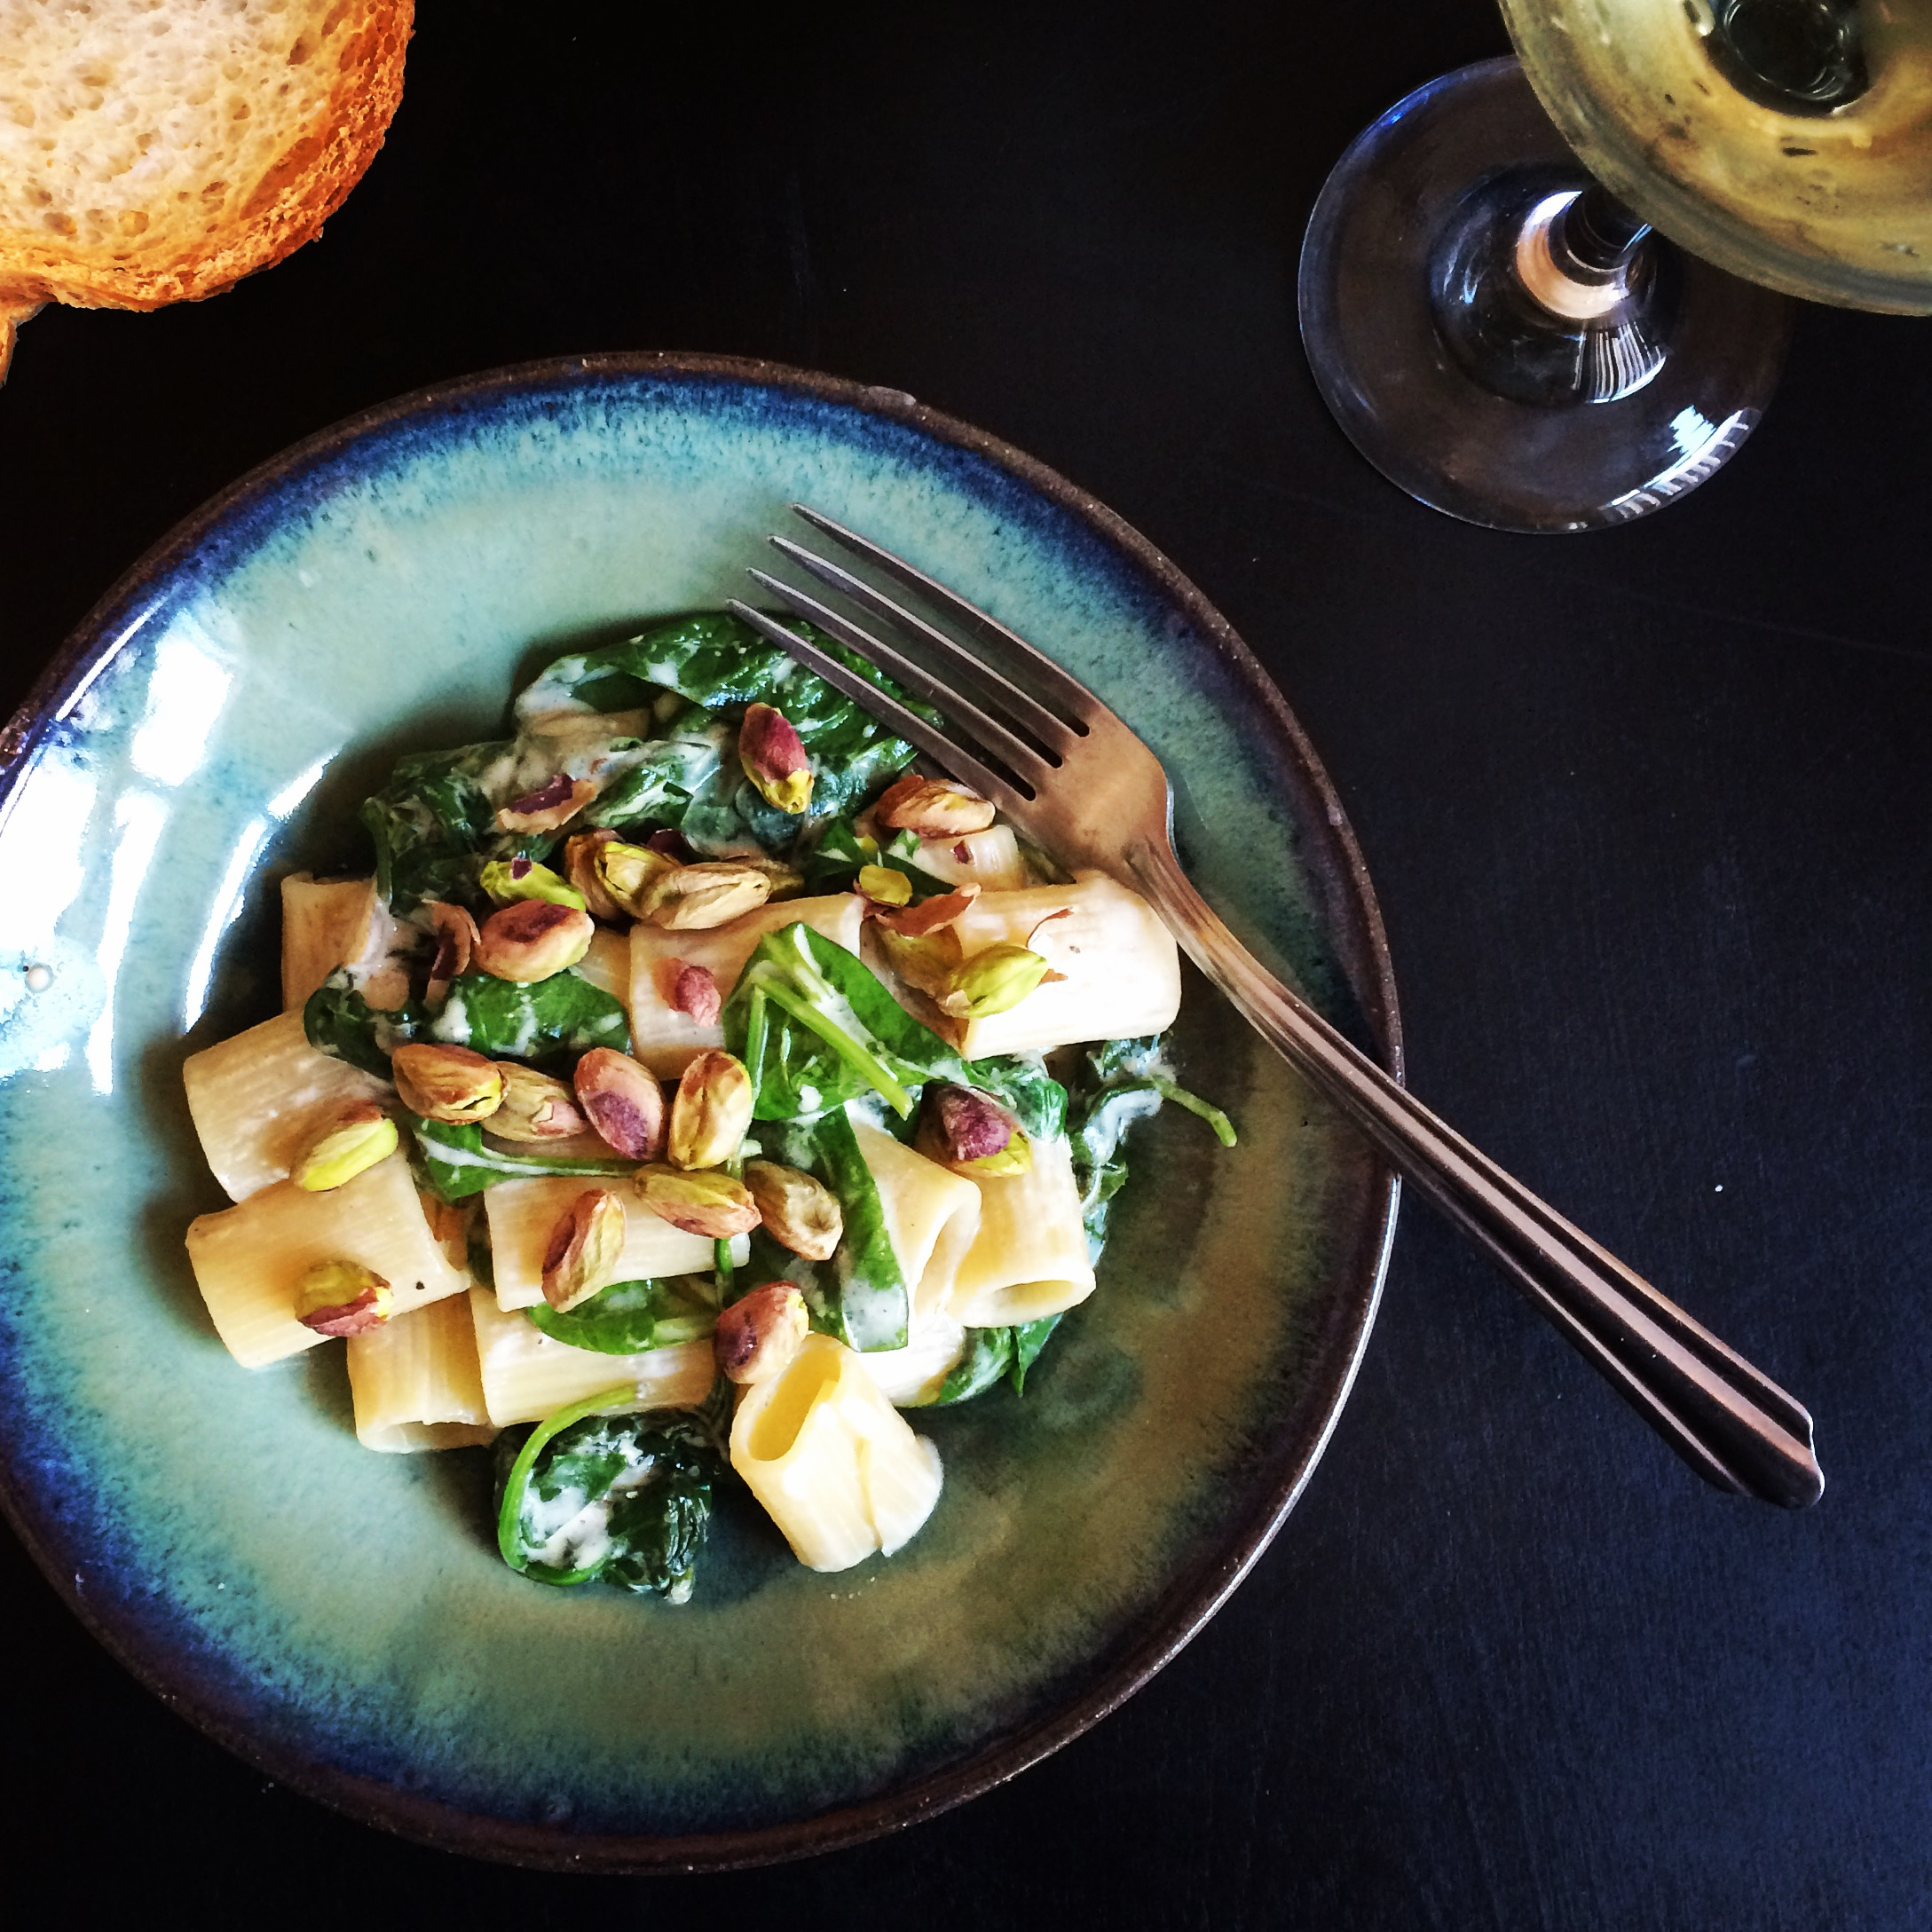 pistachio, goat cheese and spinach pasta